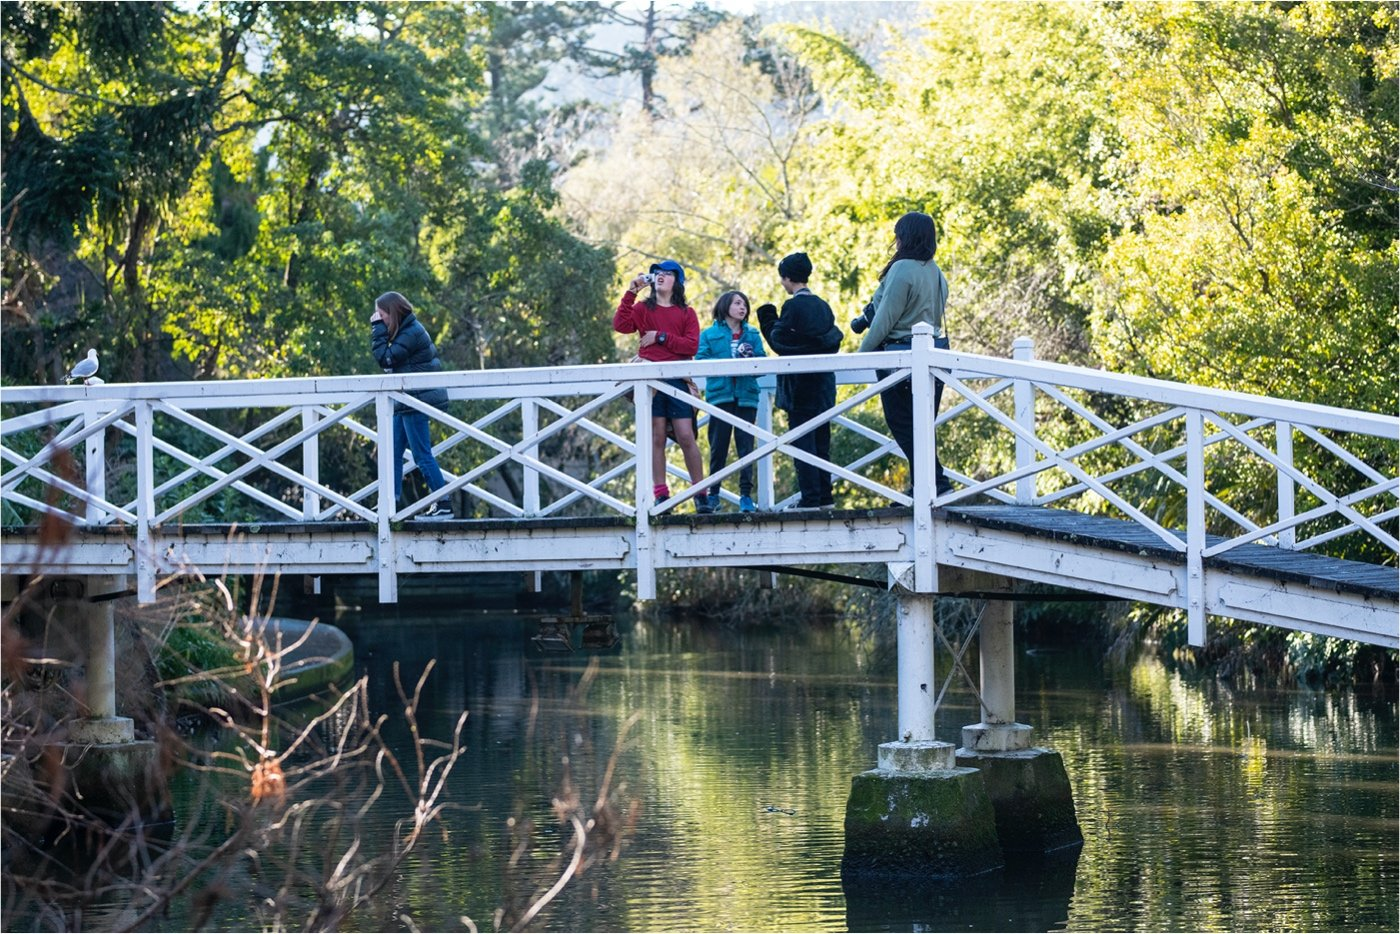 Group of students learning to look for photographic subjects guided by expert photographers. Image credit Raymond Sagapolutele